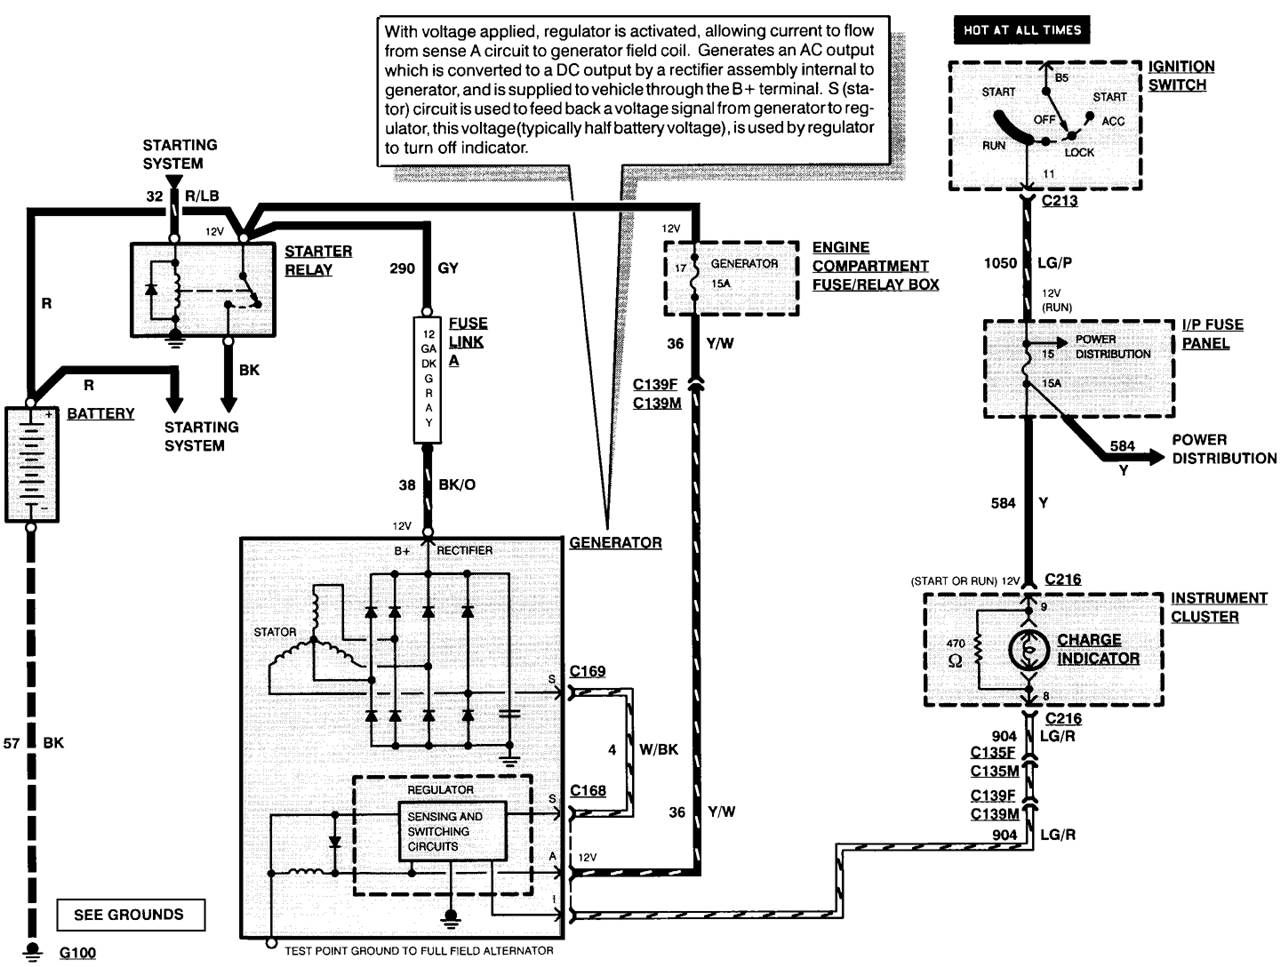 Ford alternator wiring diagram internal regulator ford alternator wiring diagrams carsut understand cars and ford alternator wiring diagram at gsmportal.co